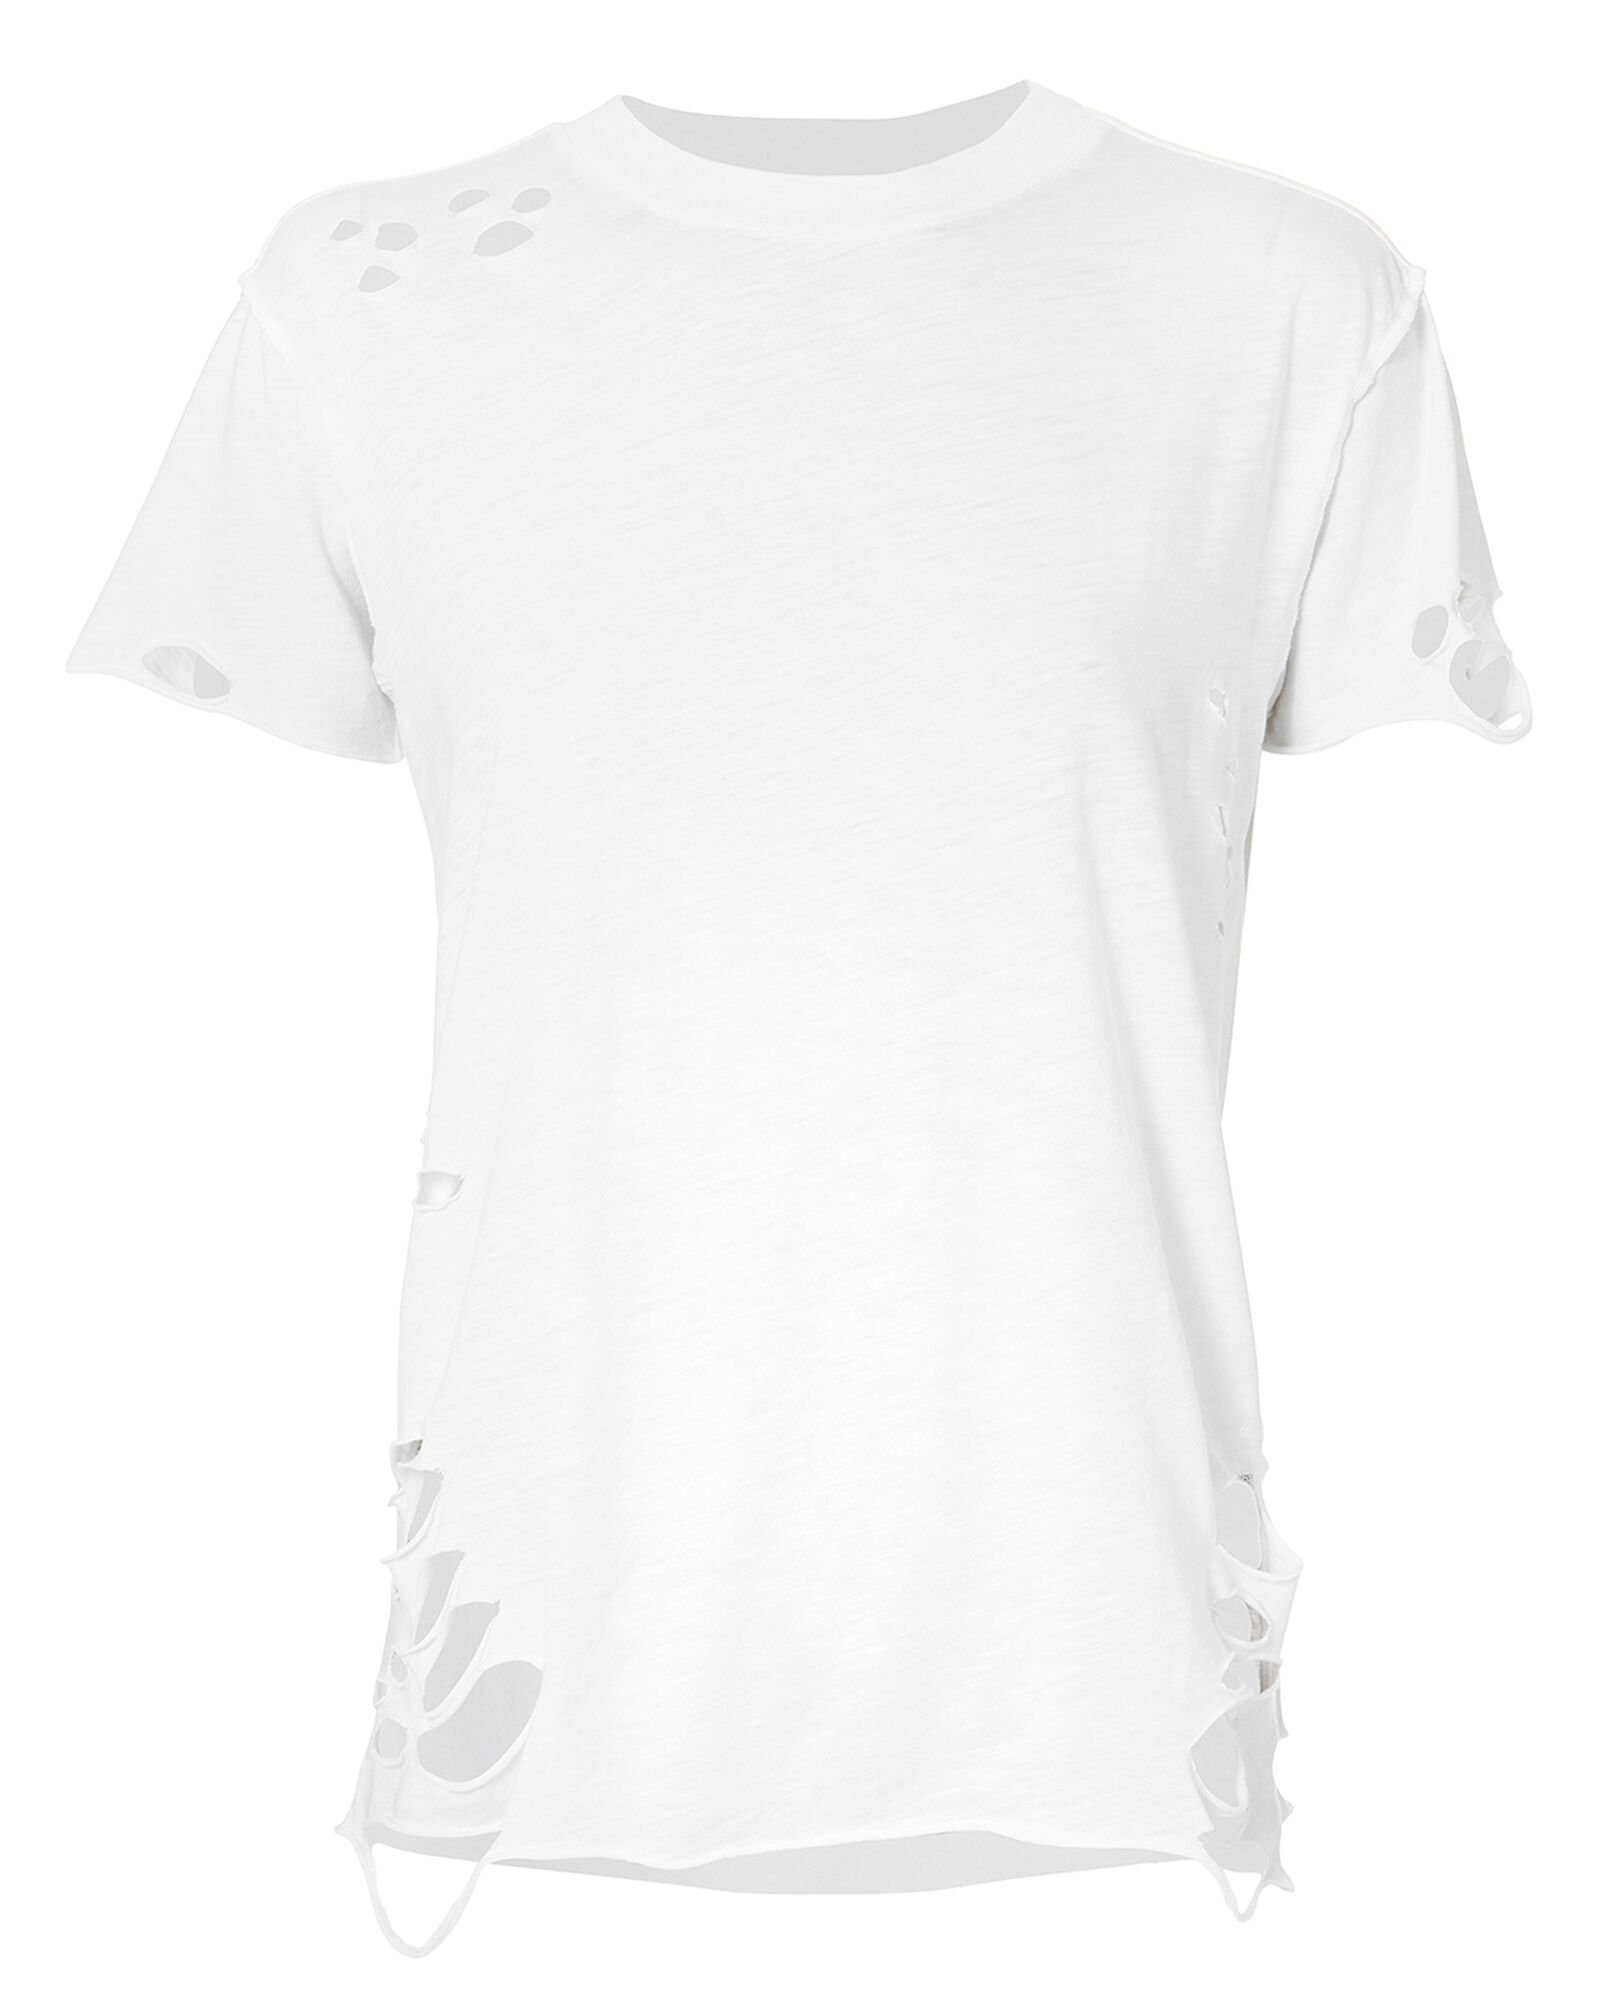 Anderson T-Shirt, WHITE, hi-res